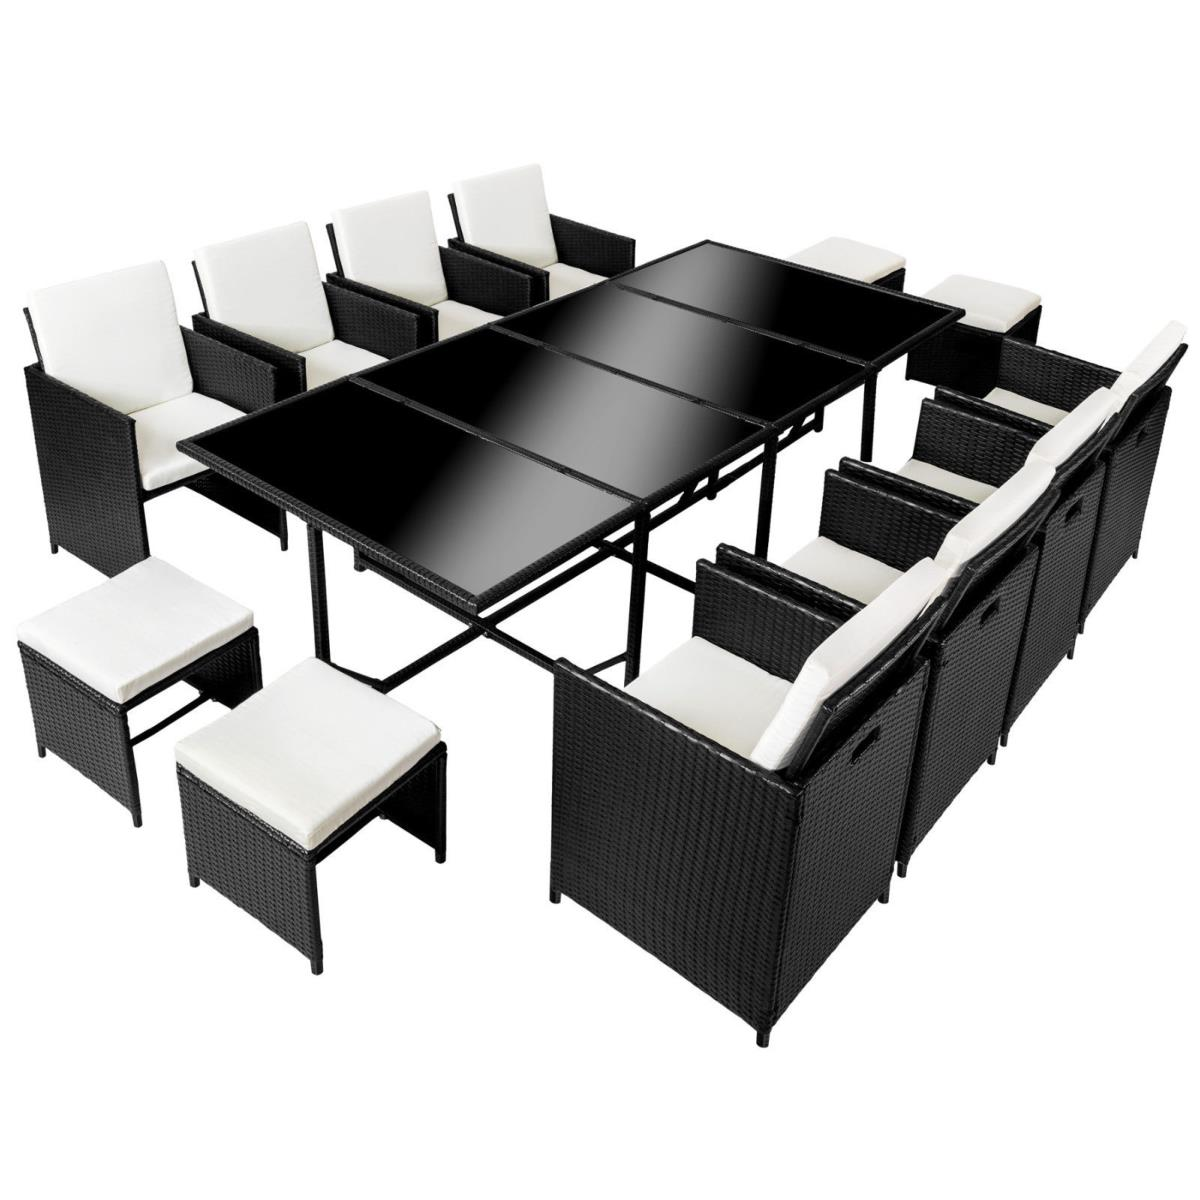 salon de jardin r sine tress e 12 personnes noir. Black Bedroom Furniture Sets. Home Design Ideas